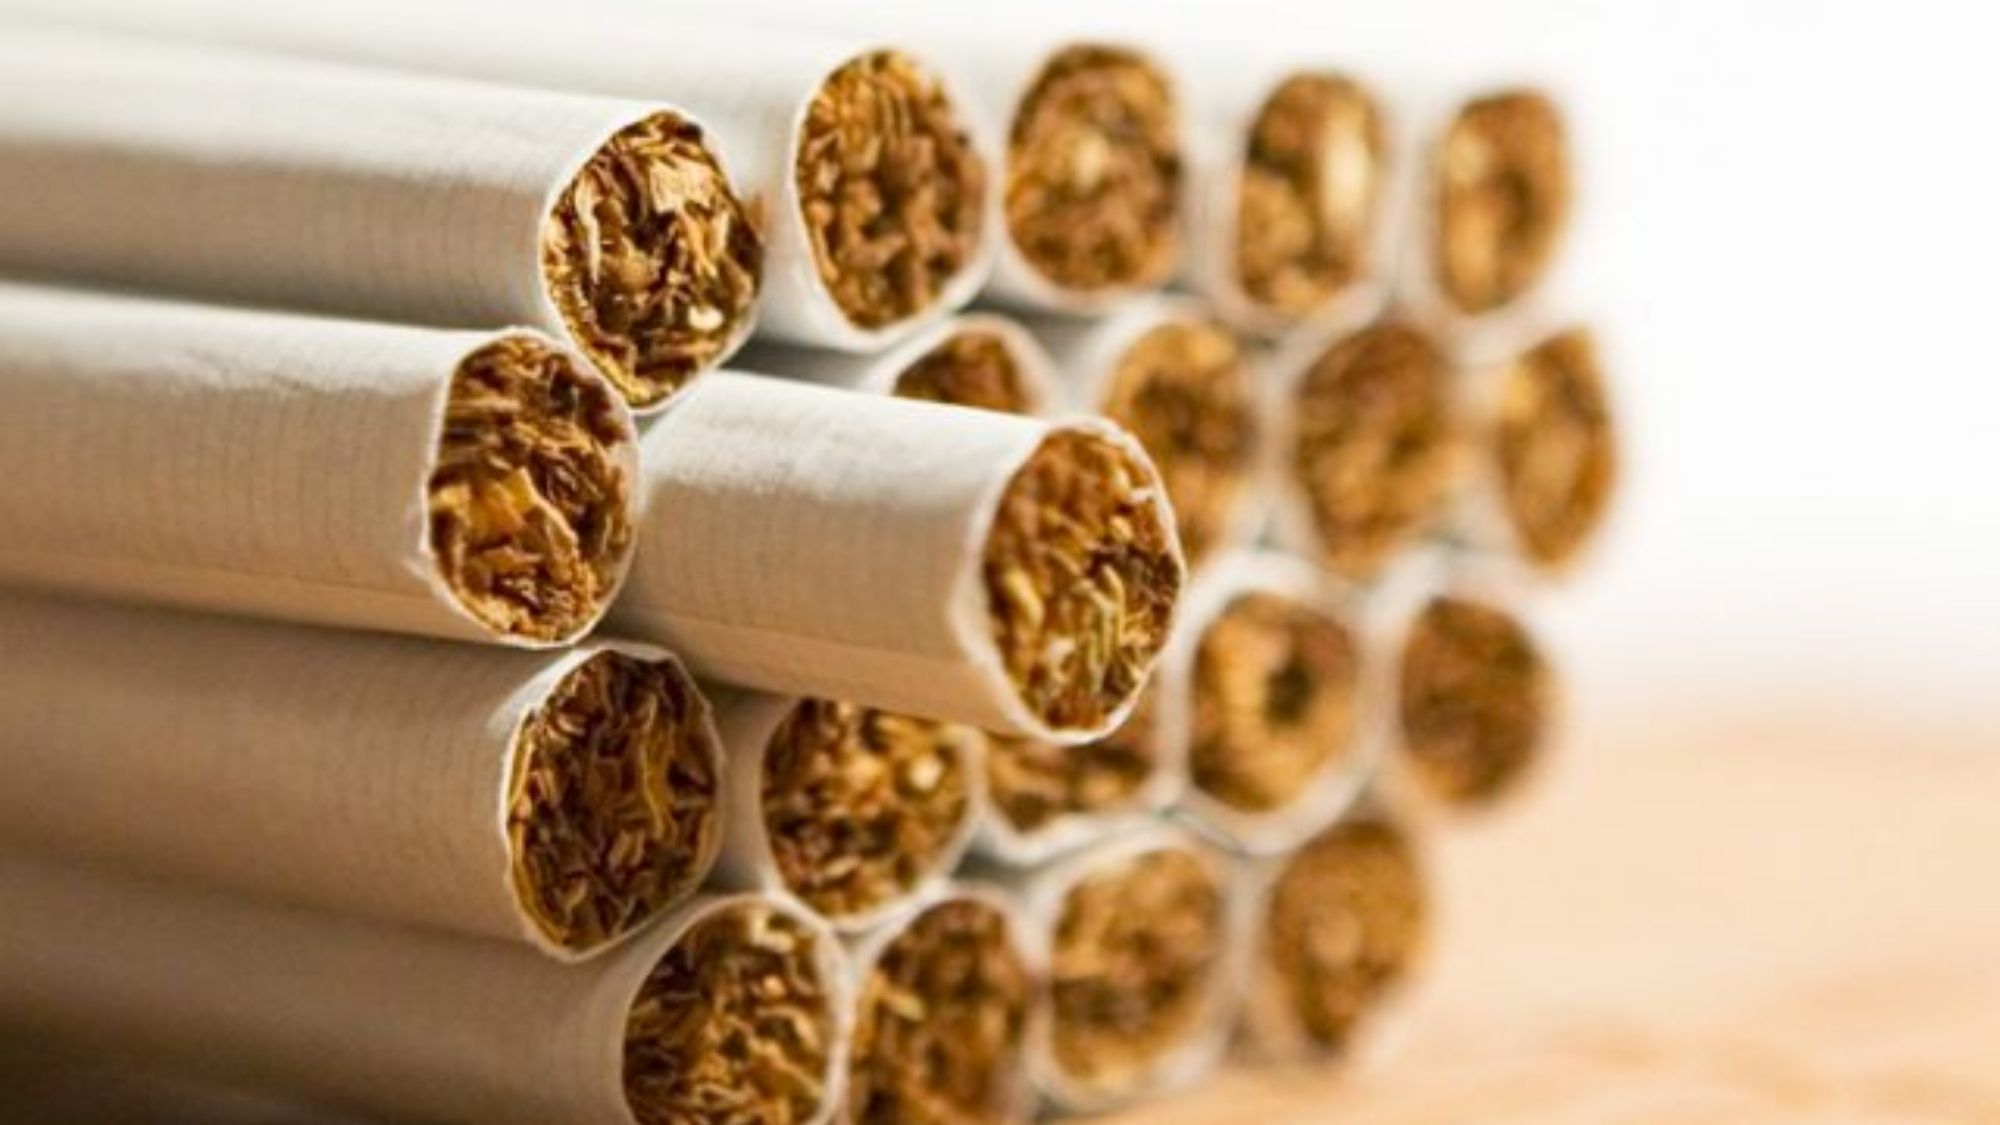 Ploy to discourage smoking; BIR sets stiffer floor price for tobacco and vapor products